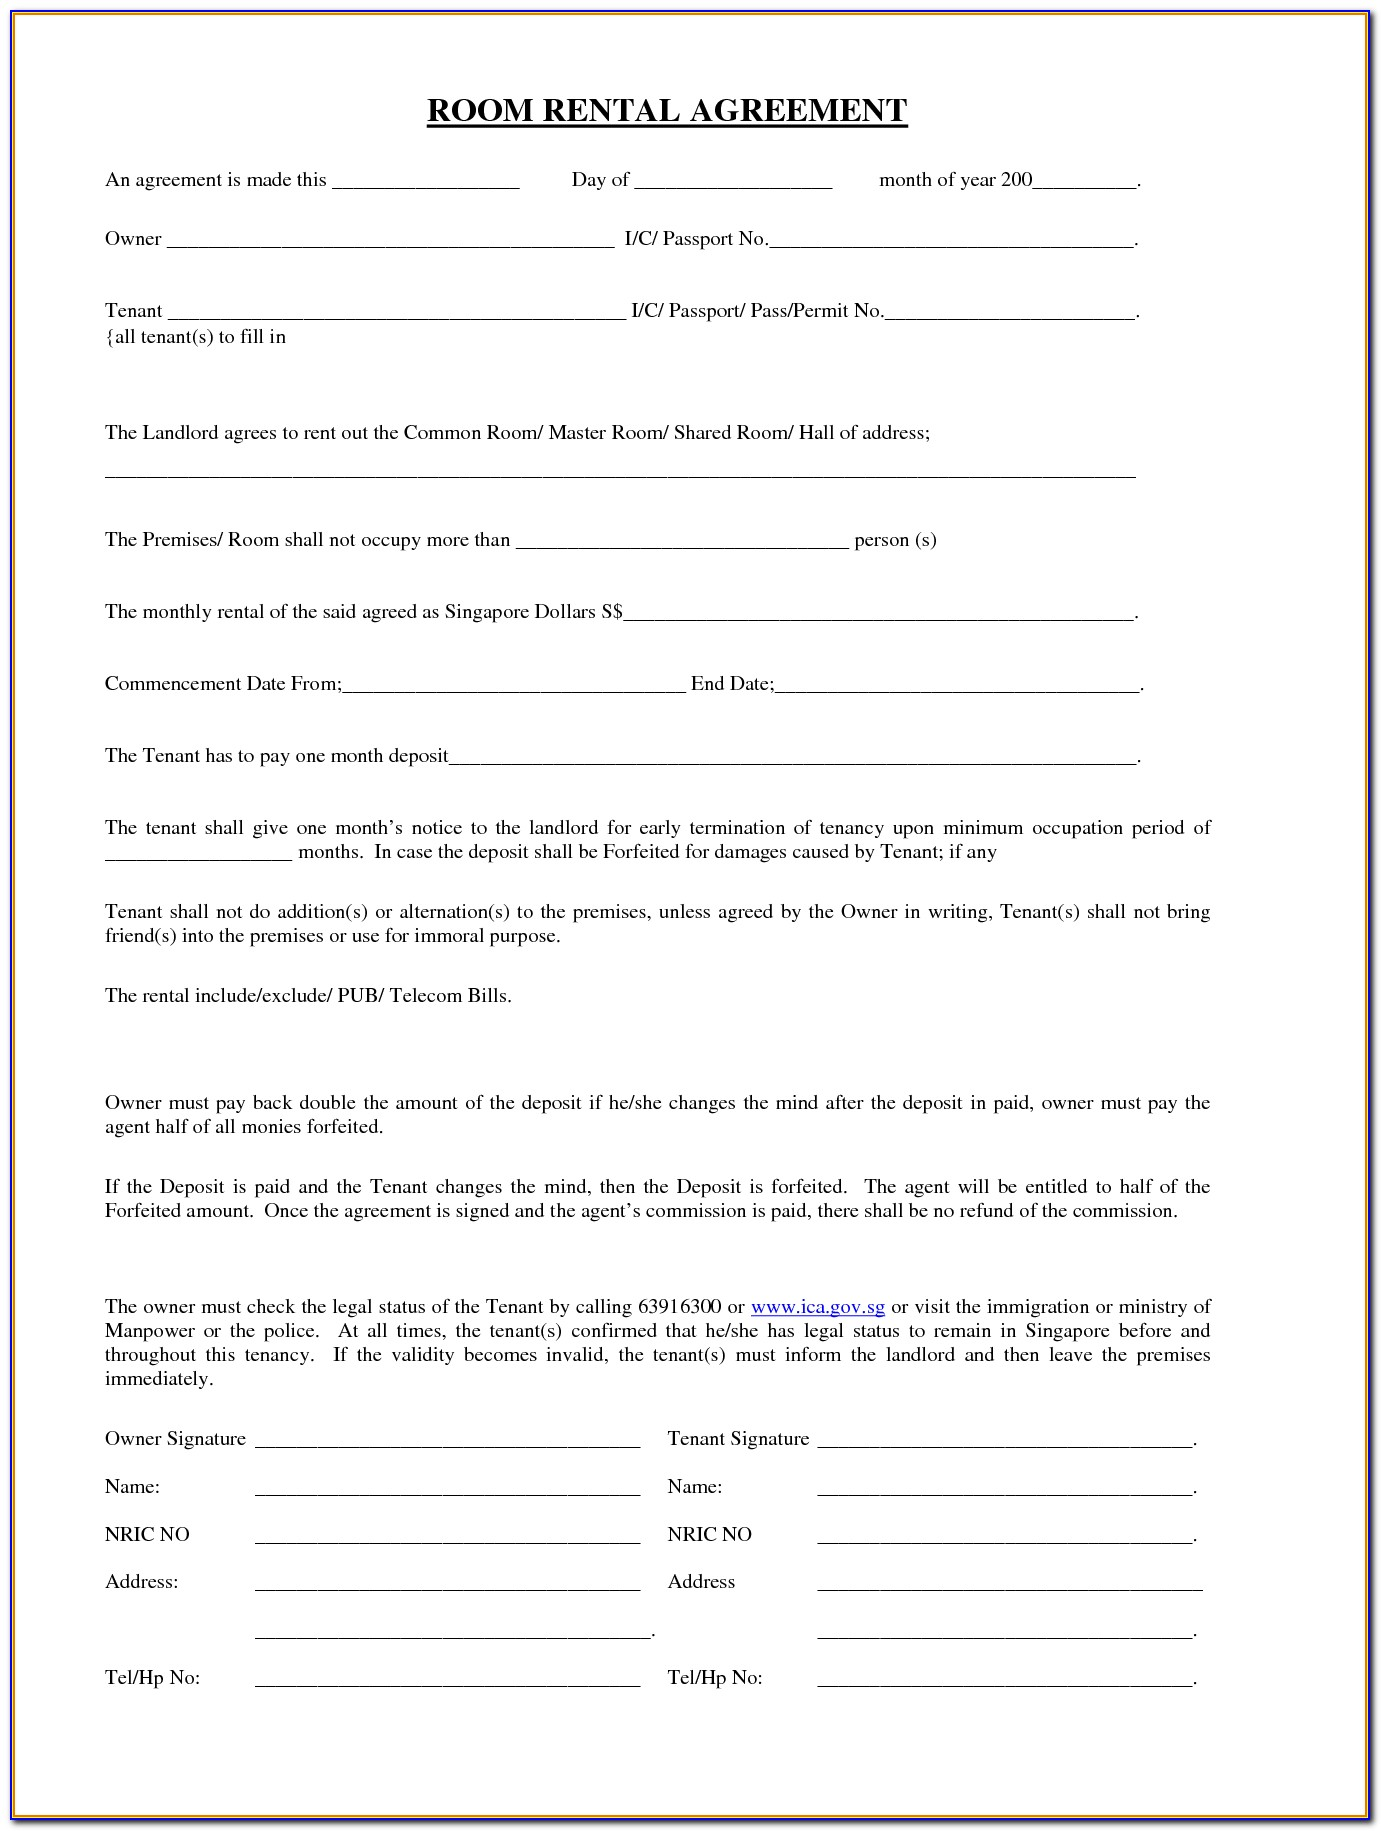 Room Rental Agreement Form Texas Free